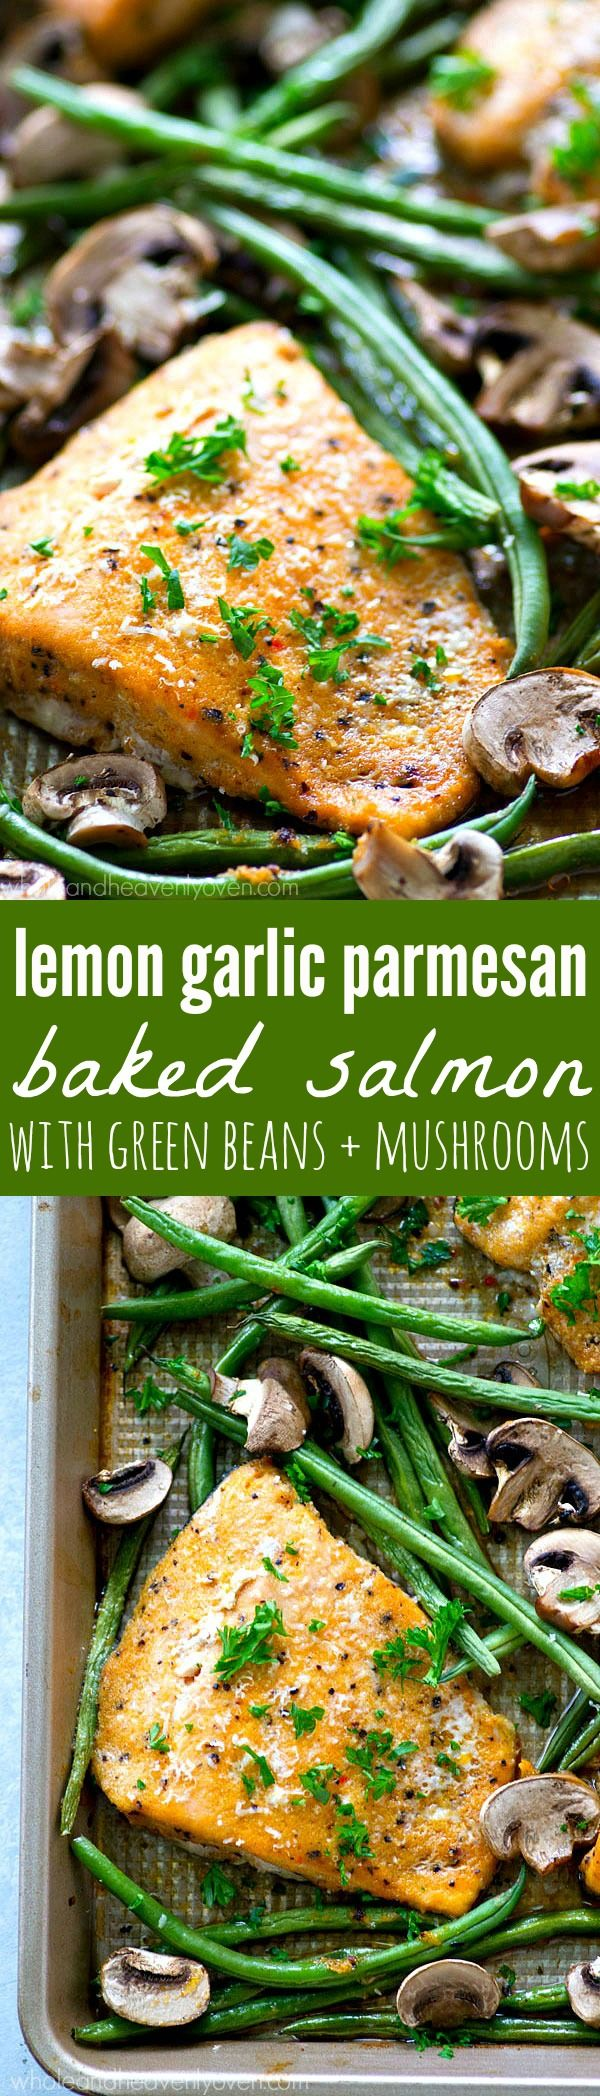 Roasted in a flavorful lemon garlic Parmesan sauce and lots of little mushrooms and green beans, this baked salmon is a breeze to throw together for a weeknight dinner and is packed with SO many amazi (Lemon Butter Garlic)